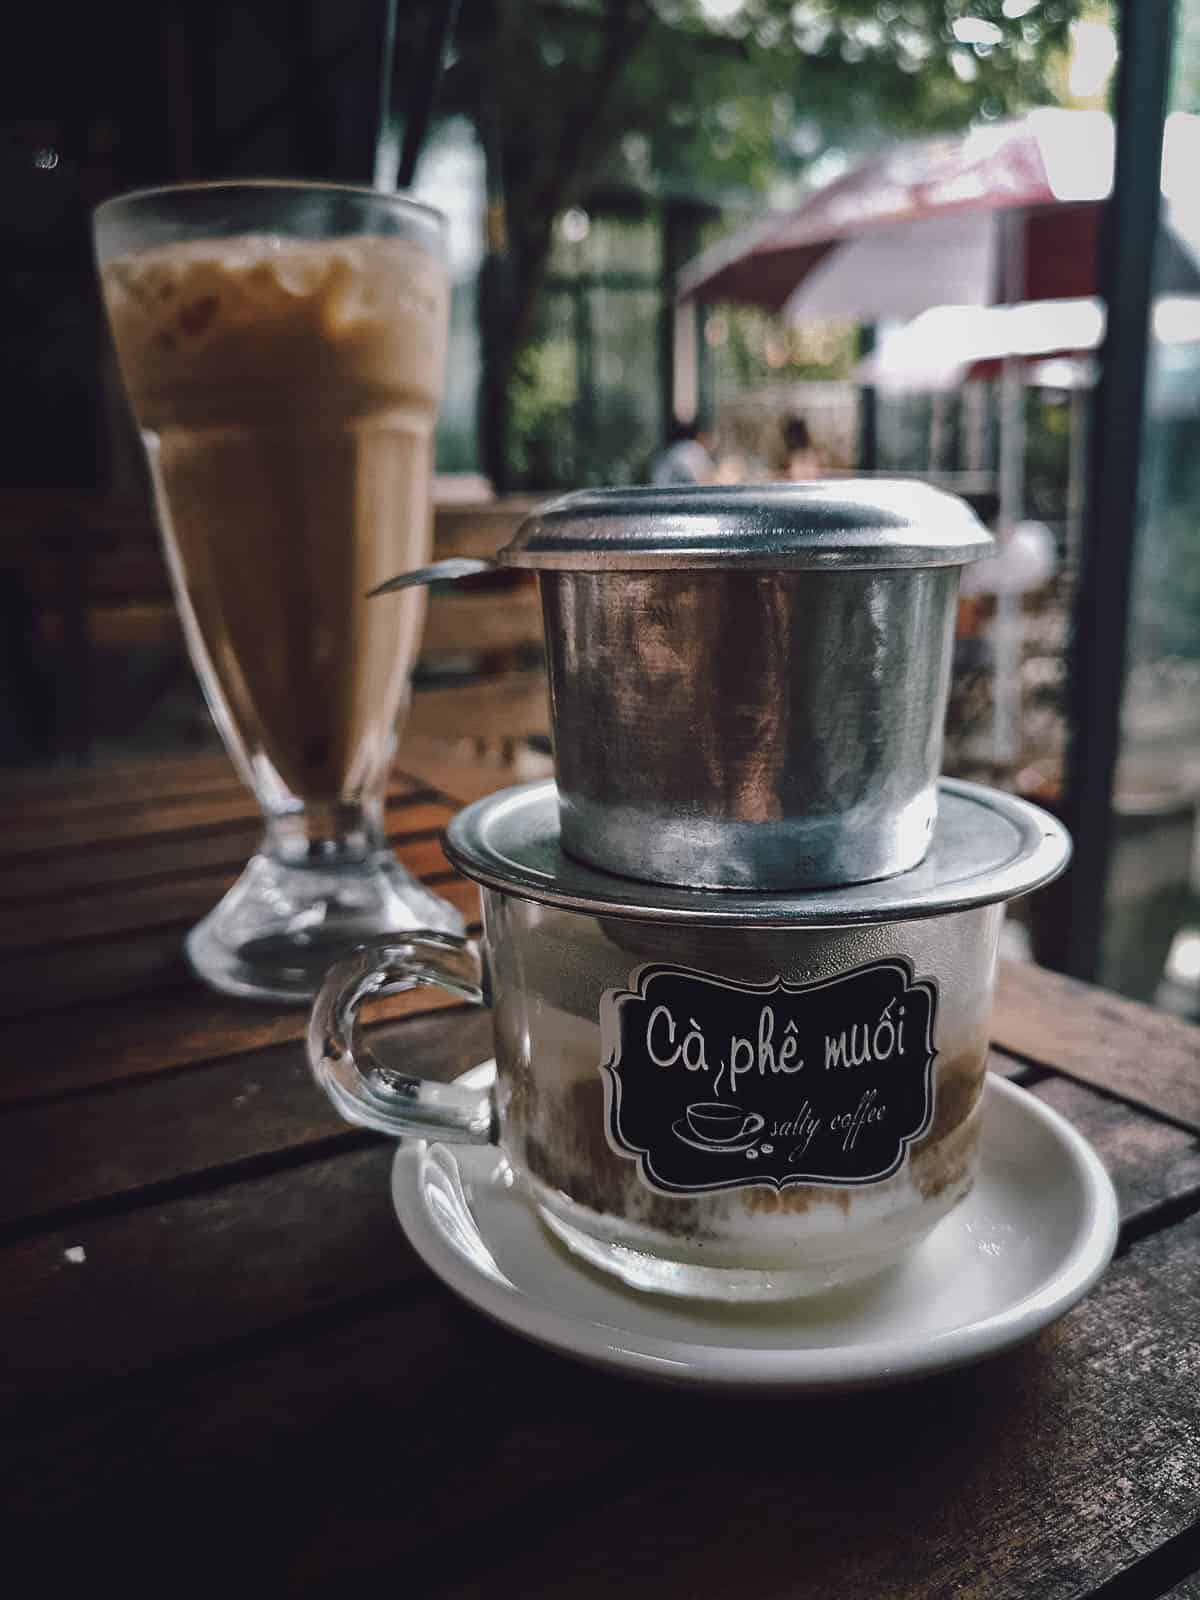 Salt coffee in Hue, Vietnam